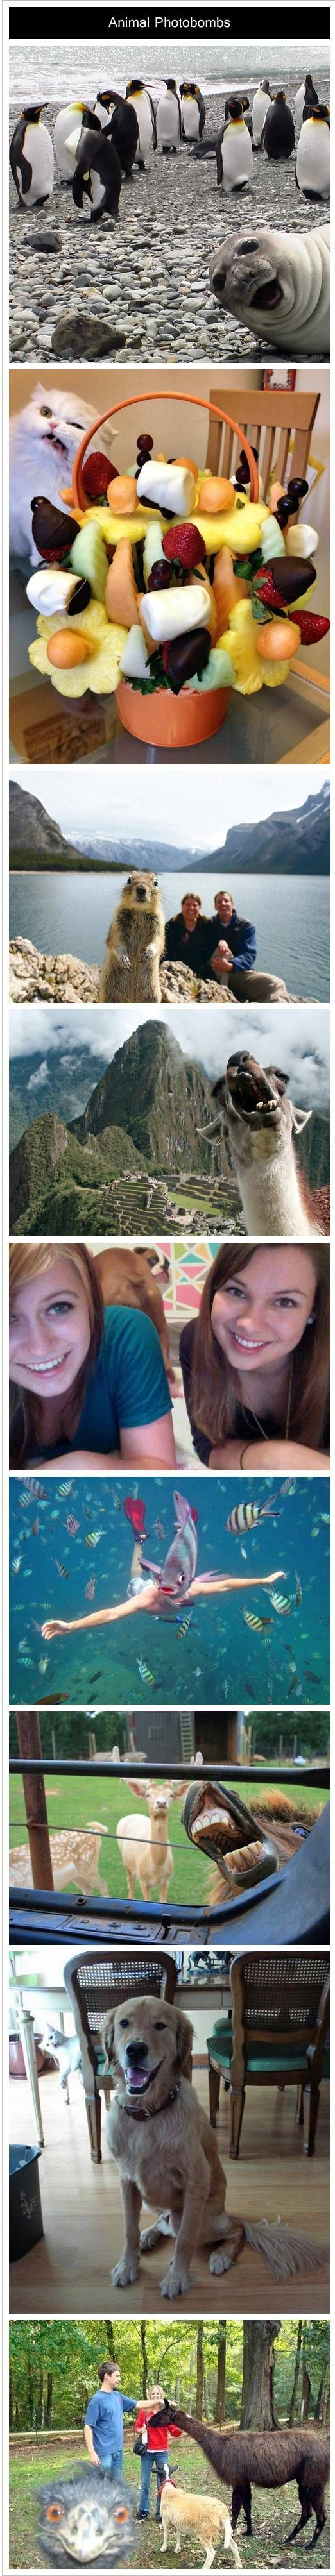 Animal Photobombs | Humor | Pinterest | Hilarious